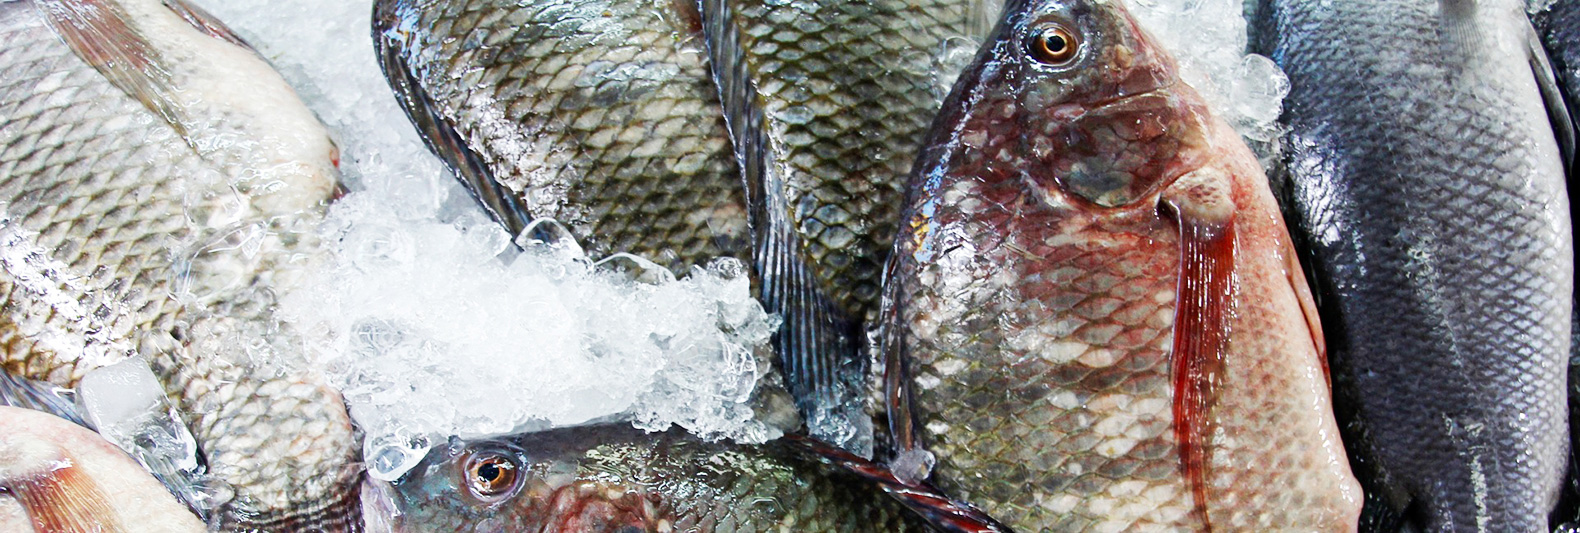 The world's fish are vanishing far faster than previously thought